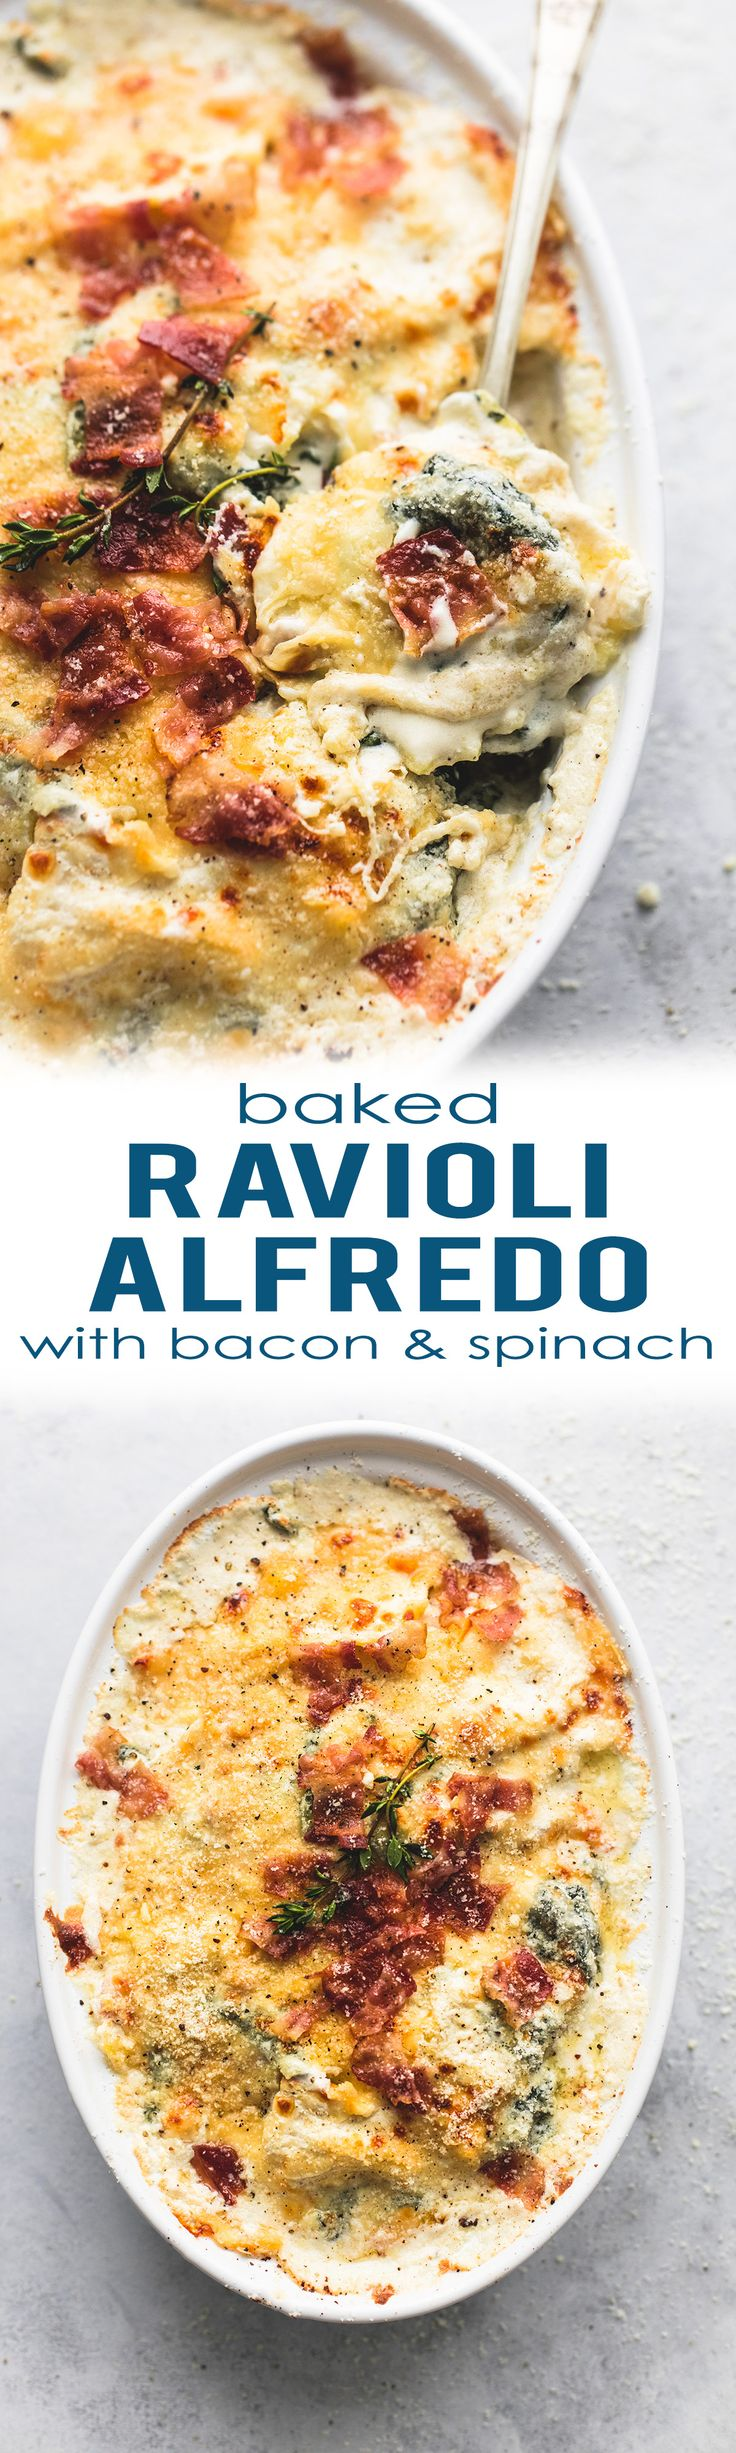 Learn how to make this easy Ravioli Alfredo Bake with Spinach & Bacon: the creamiest, cheesy parmesan alfredo sauce | lecremedelacrumb.com